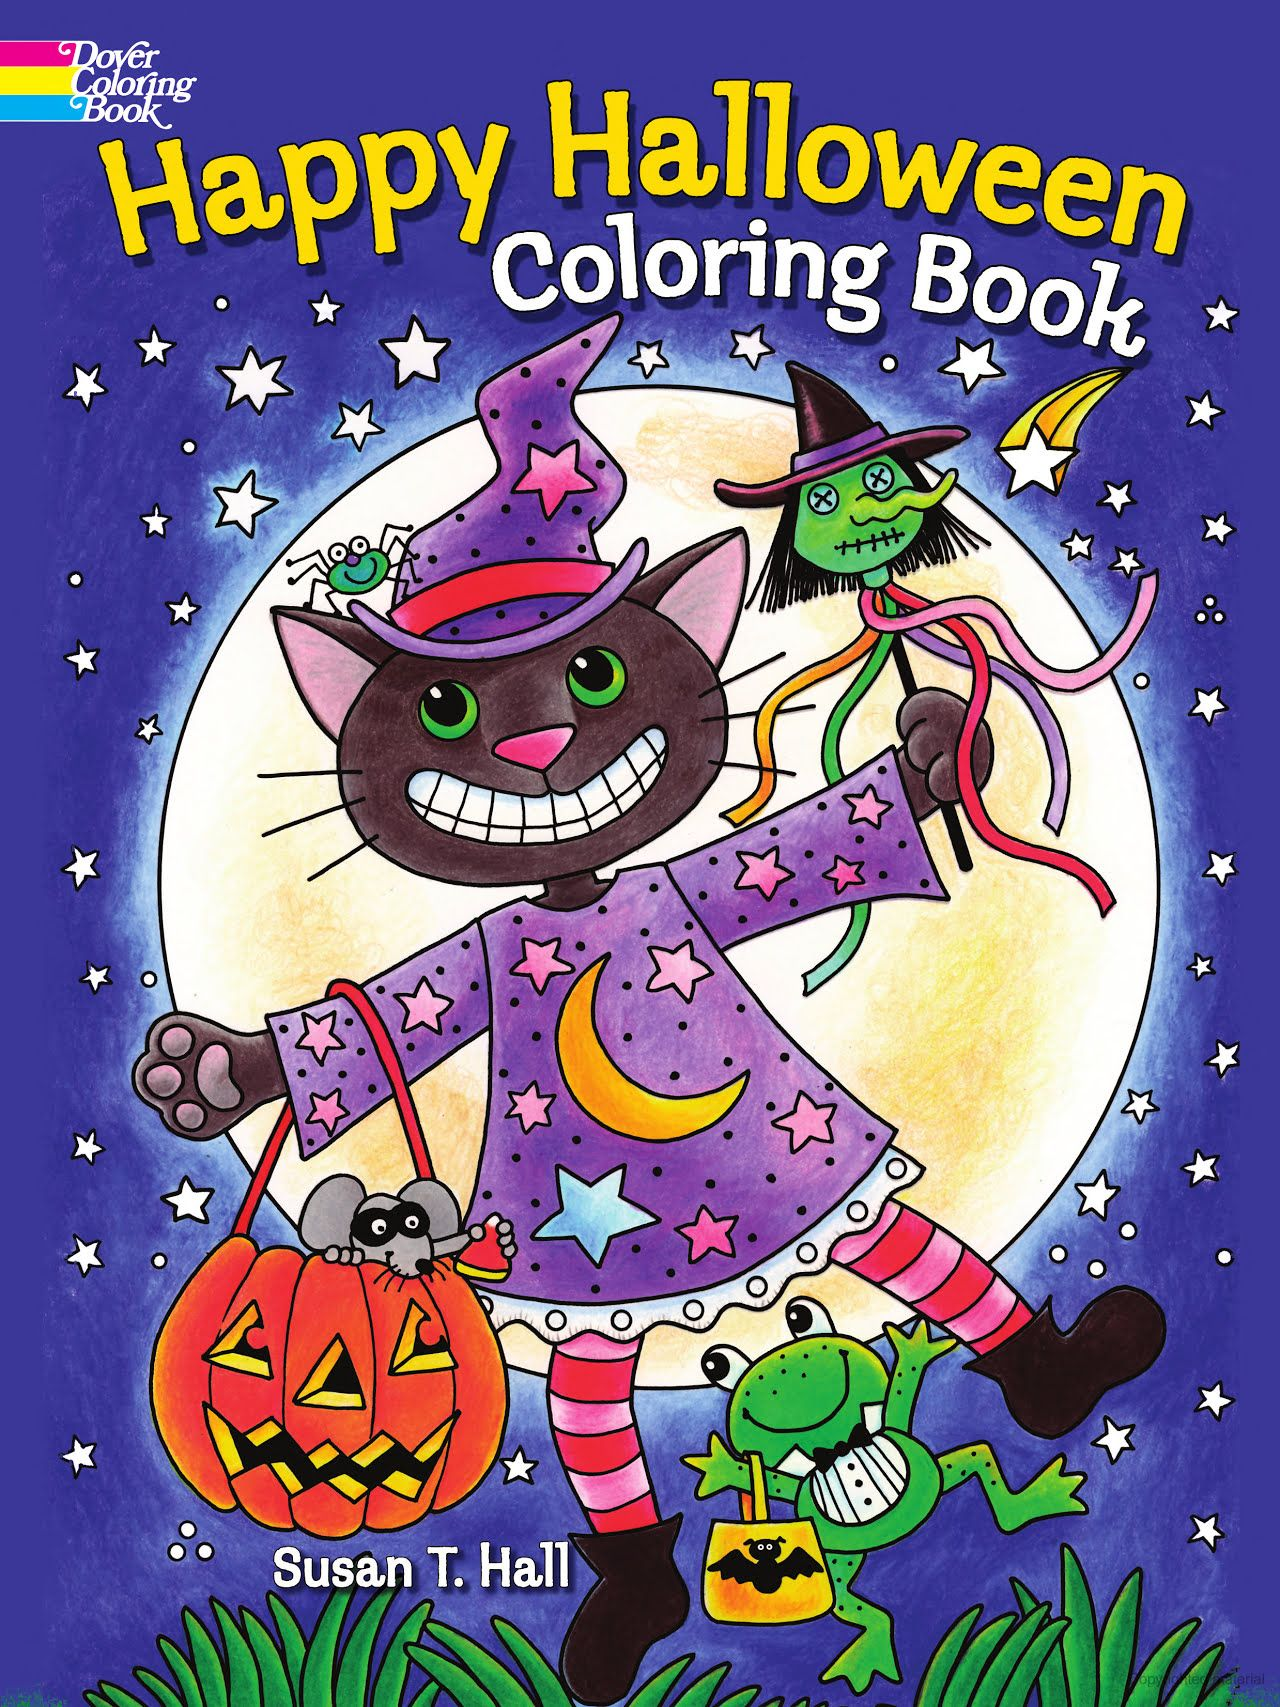 Happy Halloween | Holidays❤Hall☪ween❤Coloring Books ...